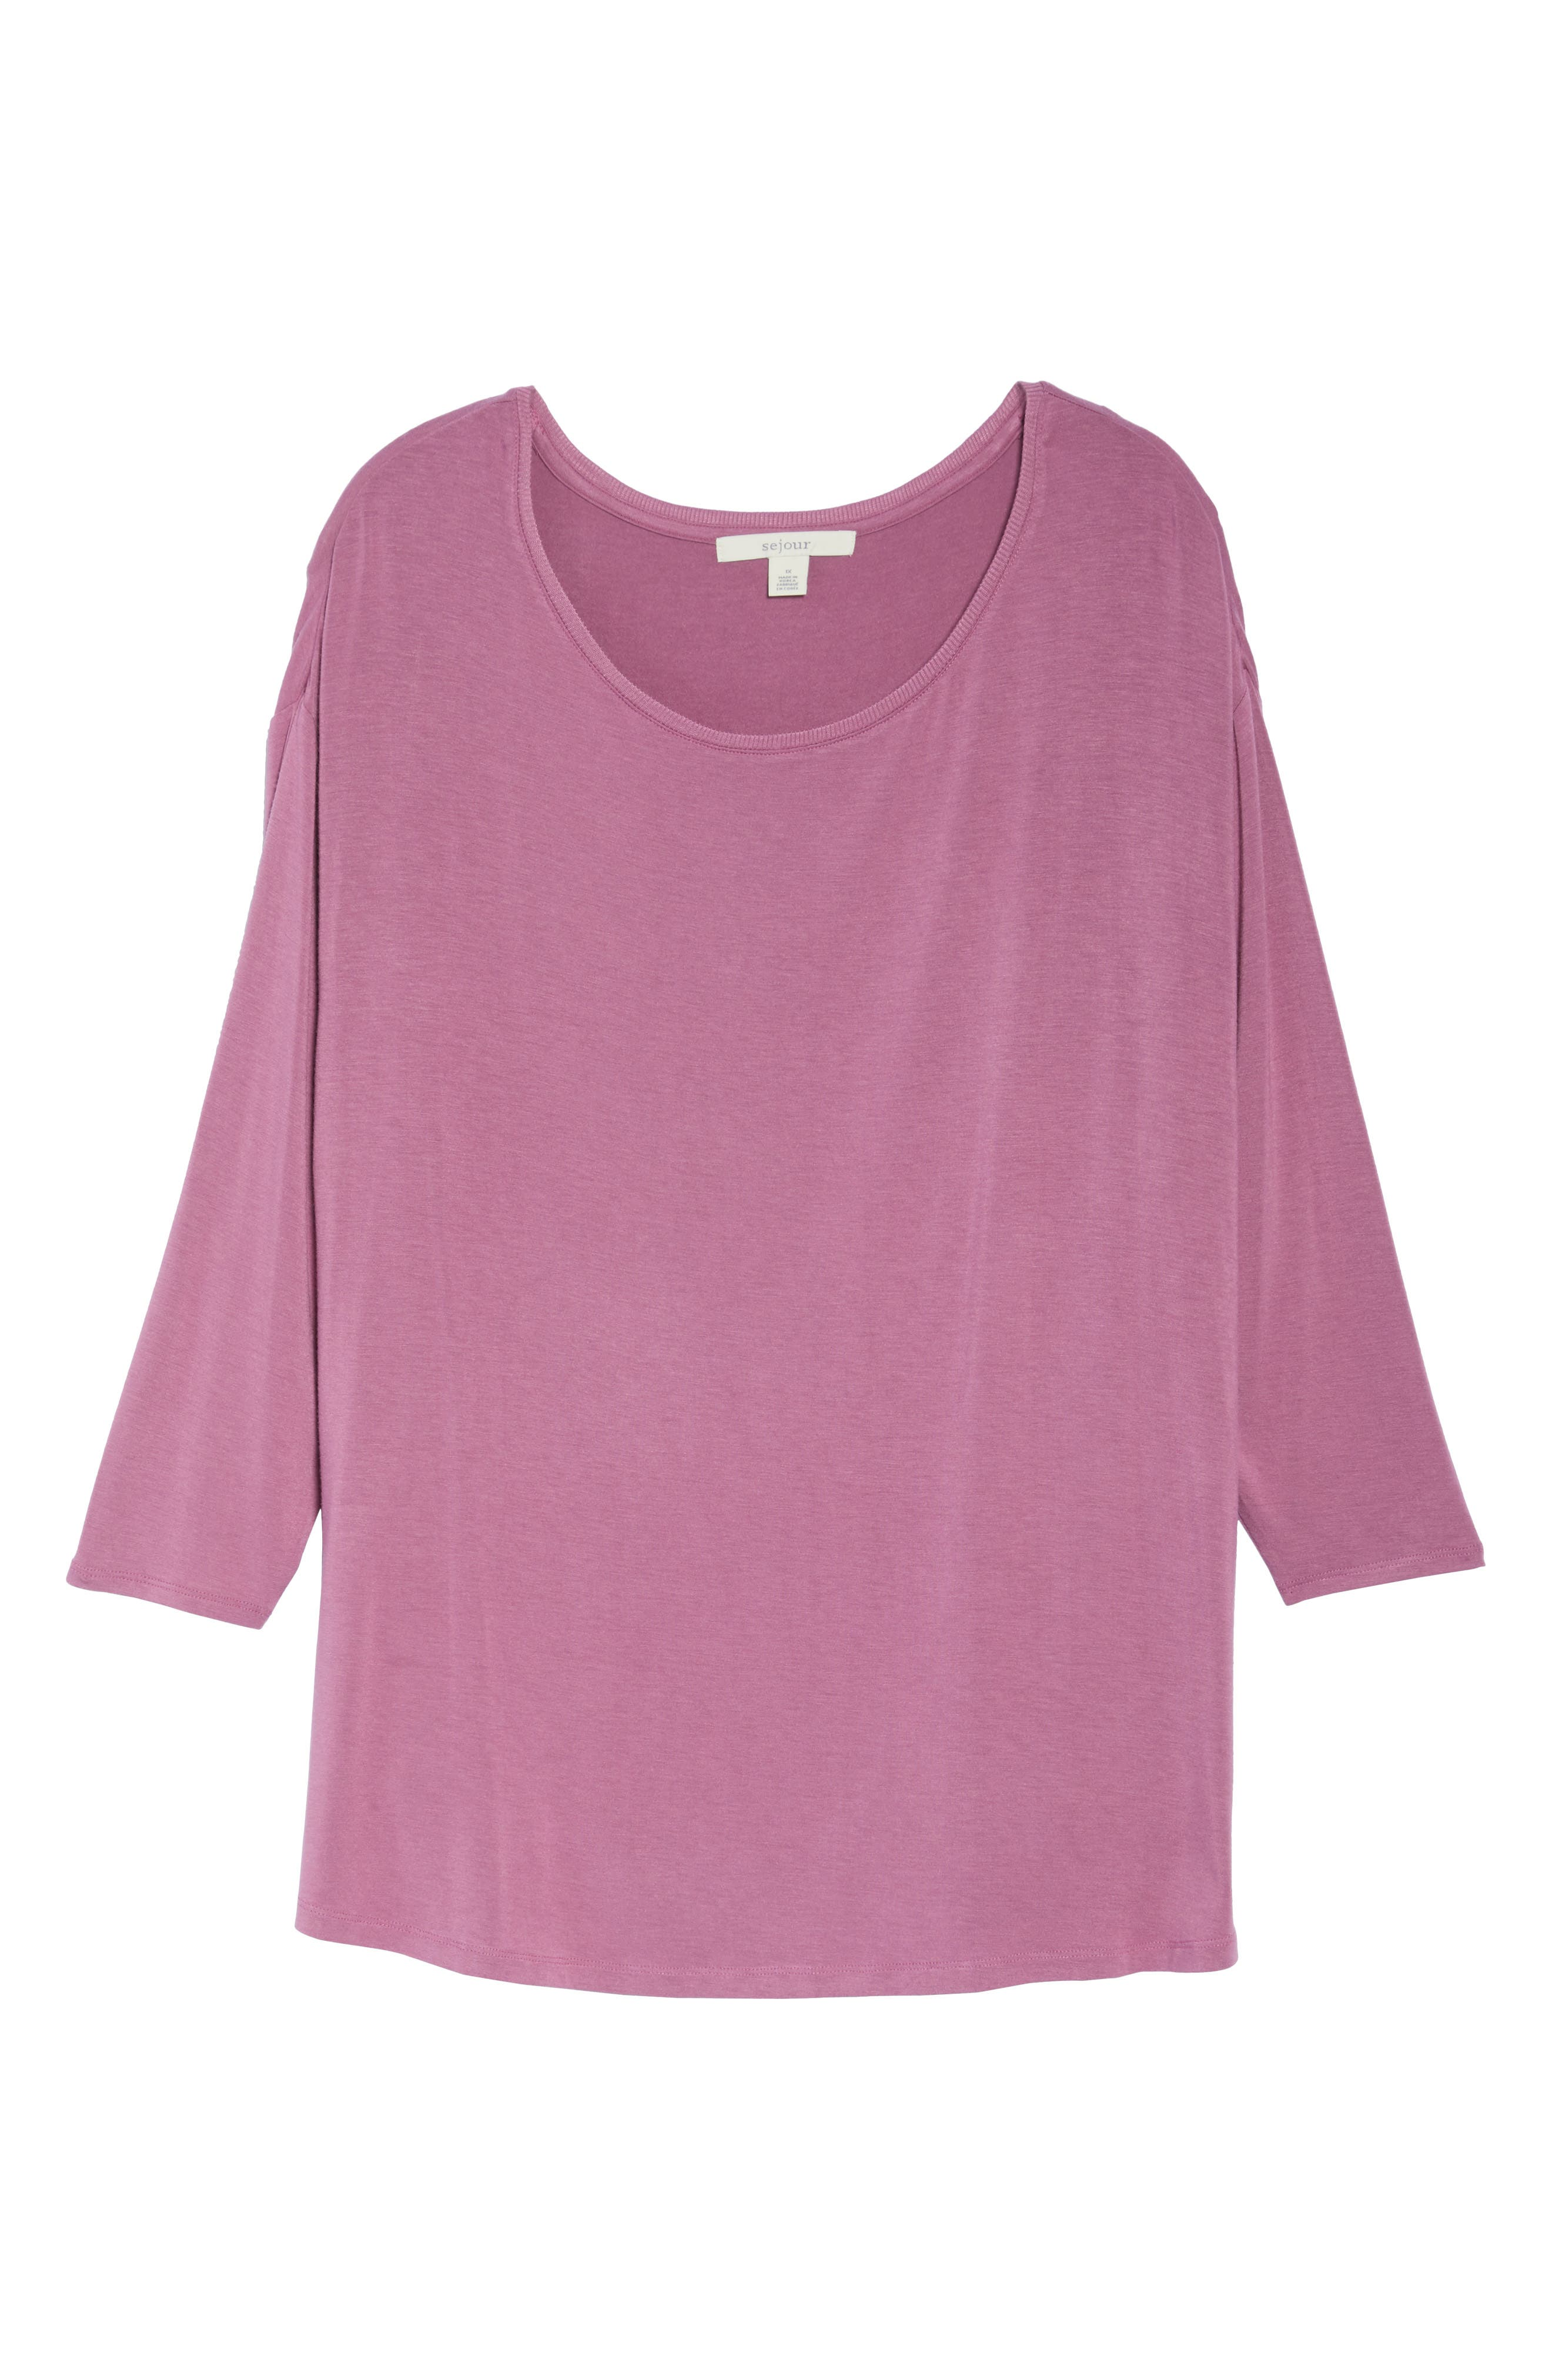 Scoop Neck Tee,                             Alternate thumbnail 6, color,                             Purple Syrup